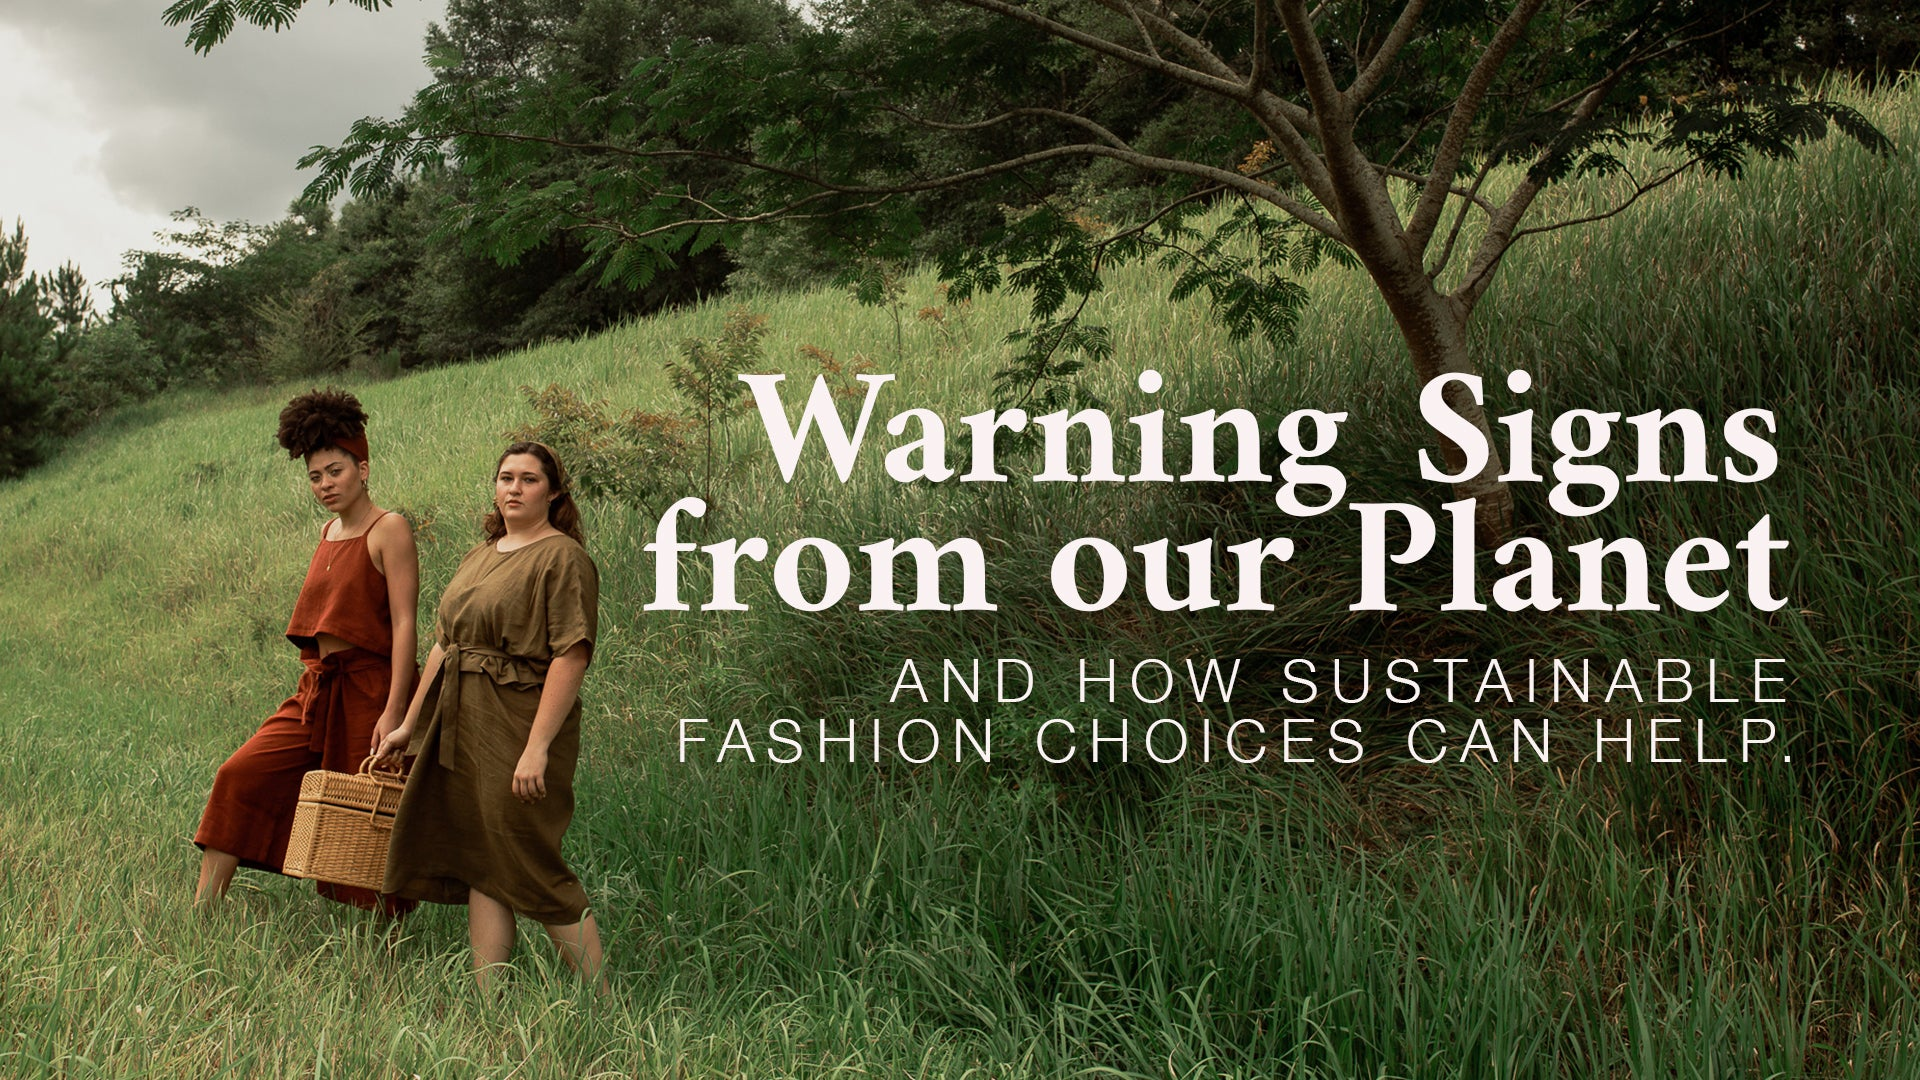 Title: Warning Signs from our Planet, and how sustainable fashion choices can help.